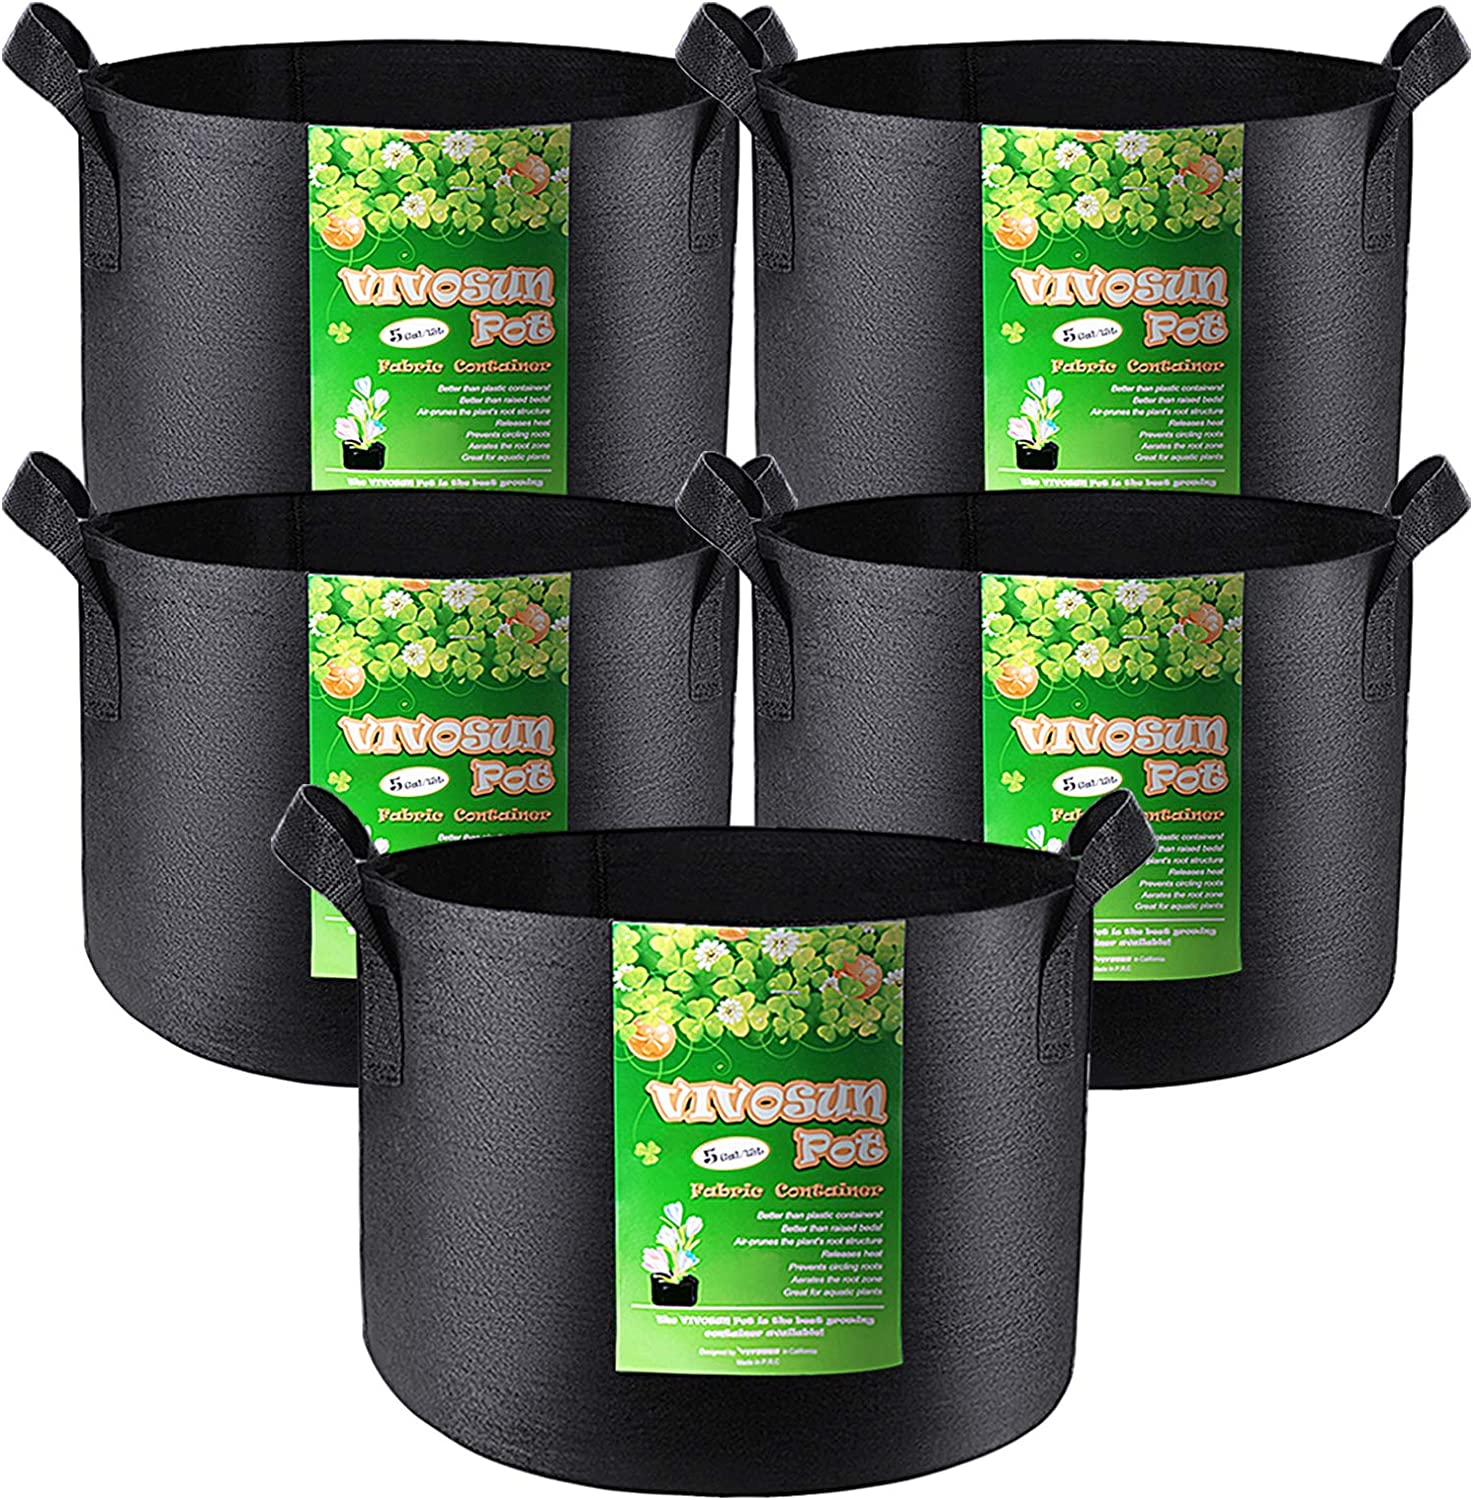 VIVOSUN 5-Pack 5 Gallon Grow Bags Heavy Duty 300G Thickened Nonwoven Plant Fabric Pots with Handles : Garden & Outdoor